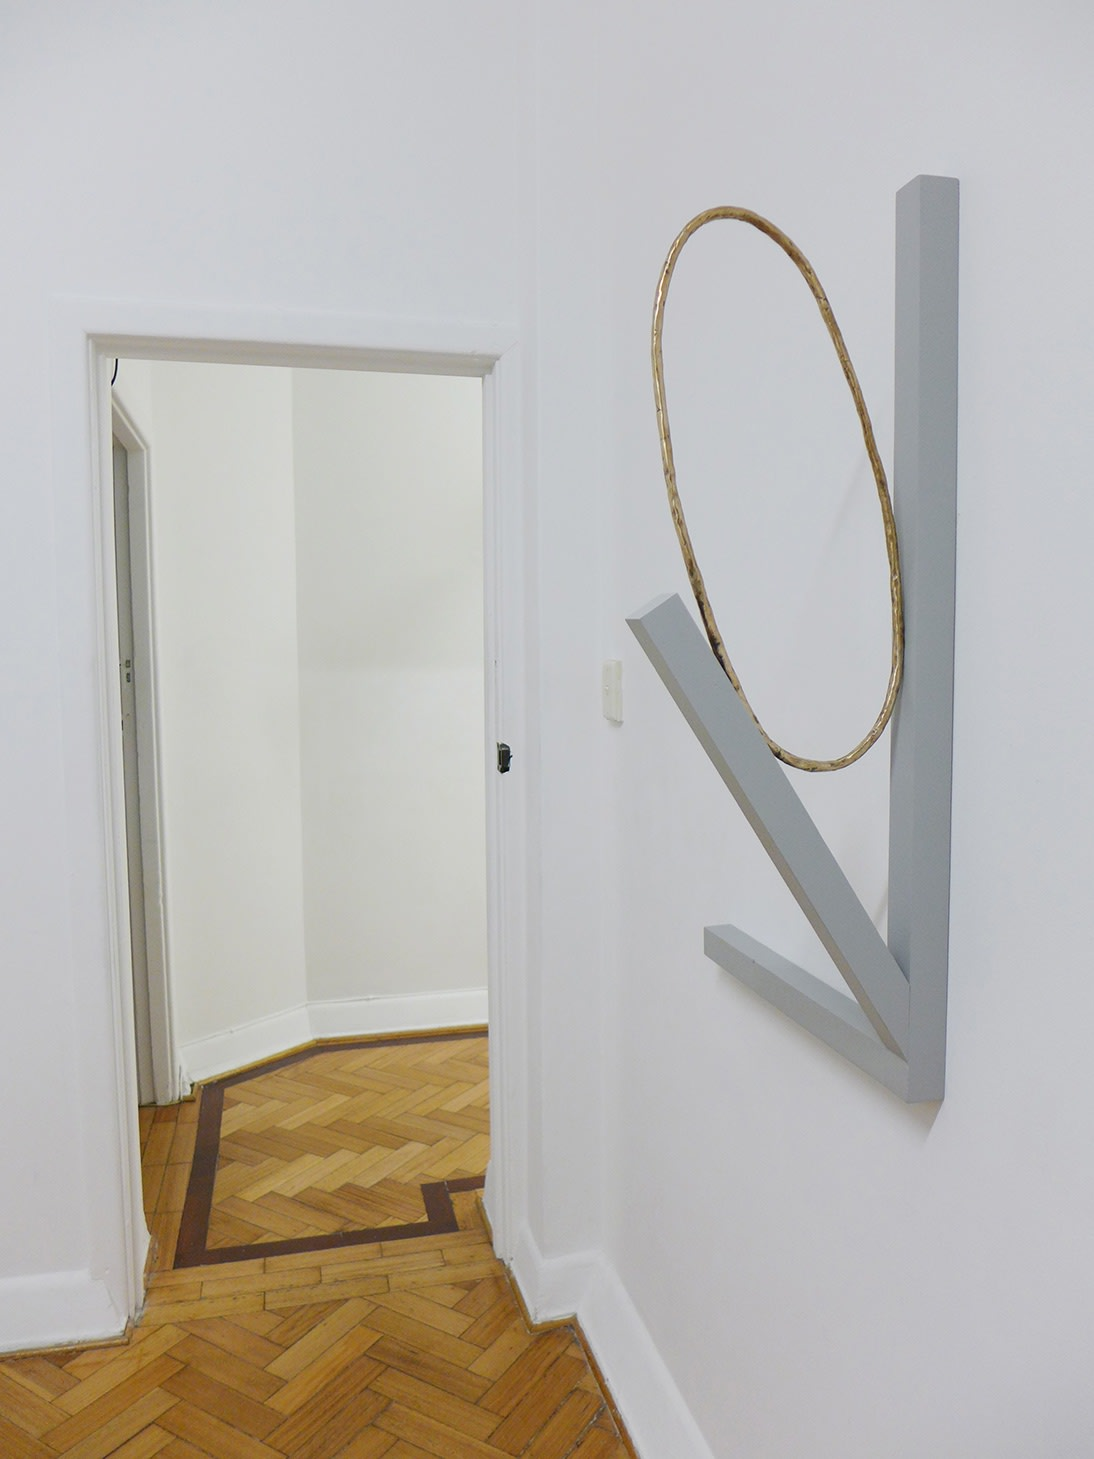 Bianca Hester, performance object #1, 2014